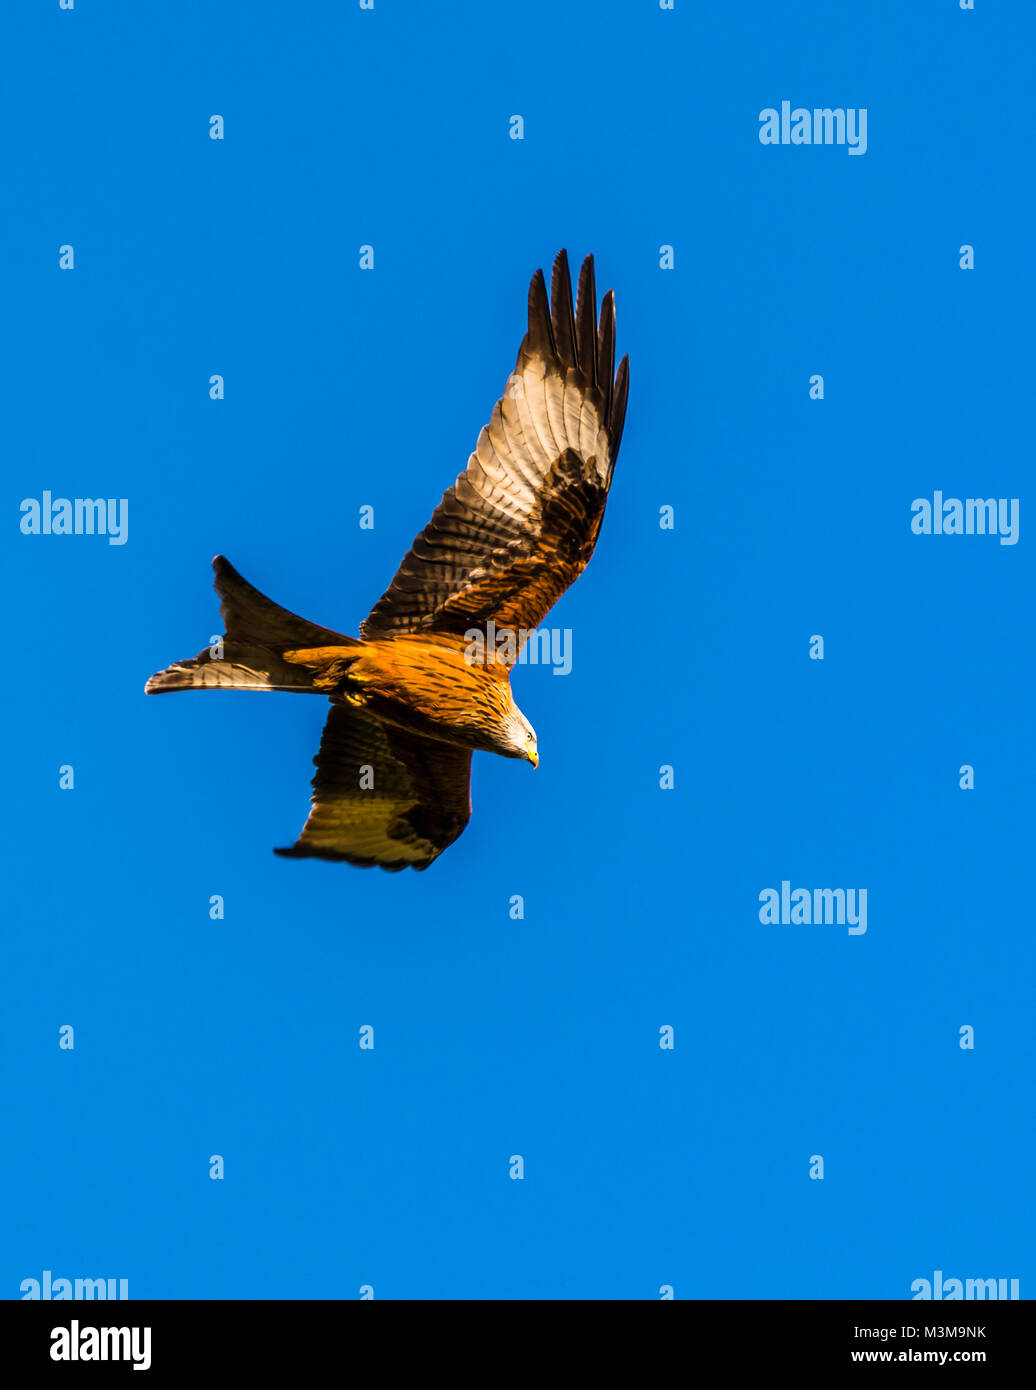 Majestic Red Kite flying over Hughenden, Buckinghamshire, UK - Stock Image